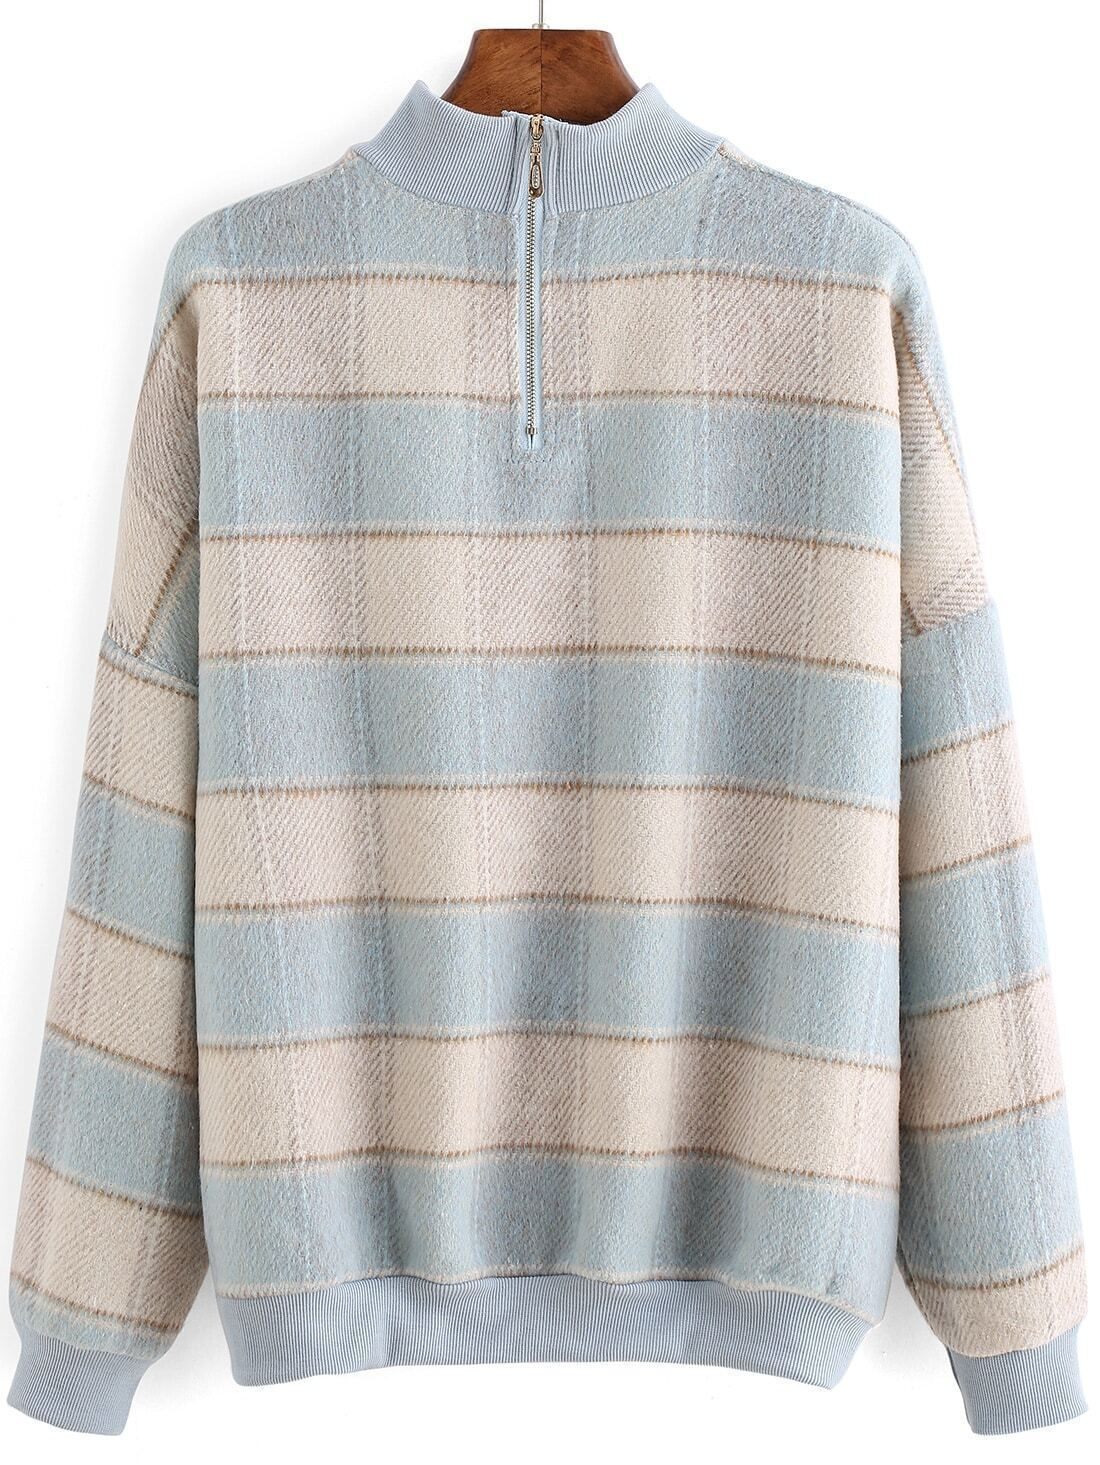 sweat shirt avec manches plaid bleu french romwe. Black Bedroom Furniture Sets. Home Design Ideas